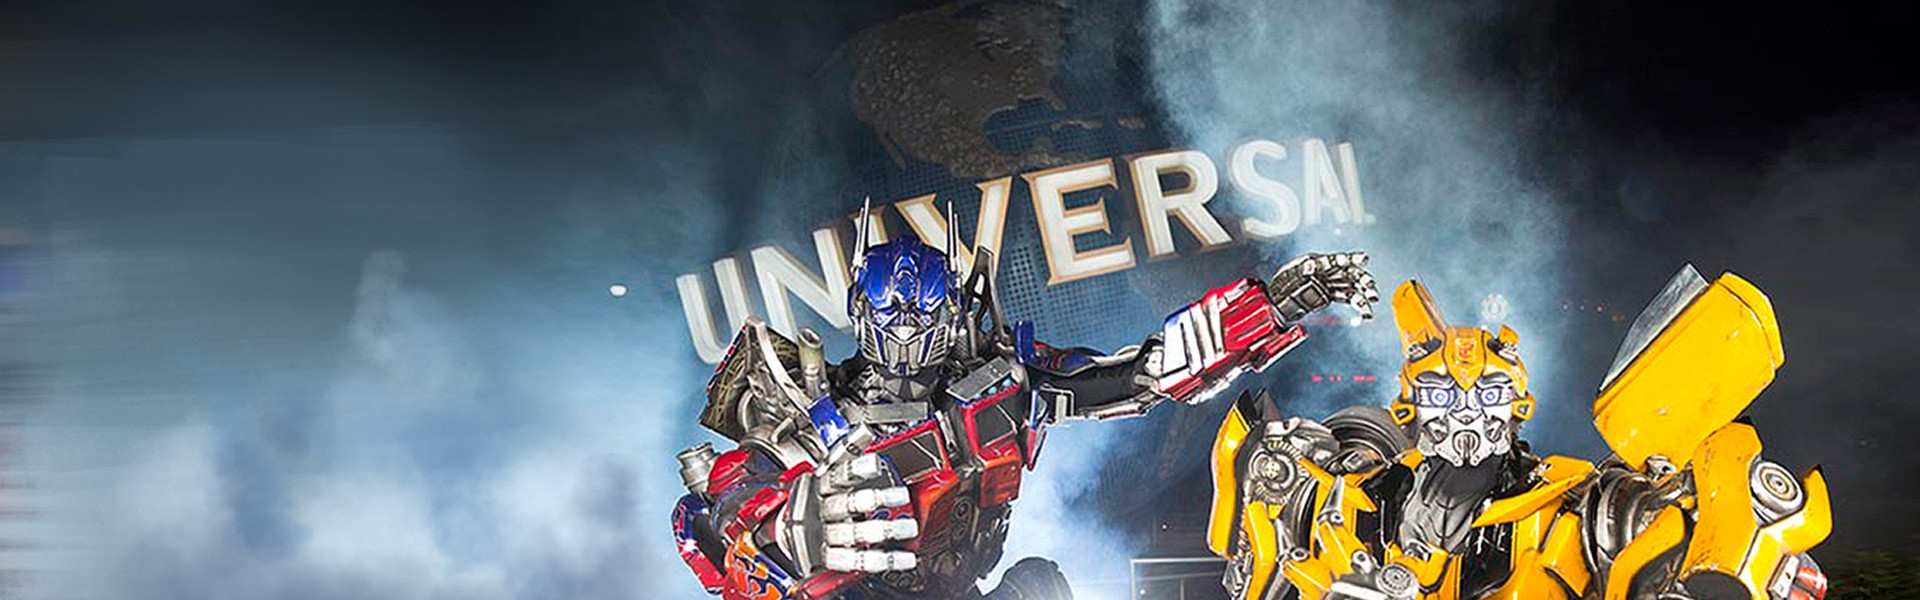 Visiting Transformers in front of Universal from our resorts near Universal Studios Orlando   Discounted Universal Studios Tickets   Specials on Theme Park Tickets